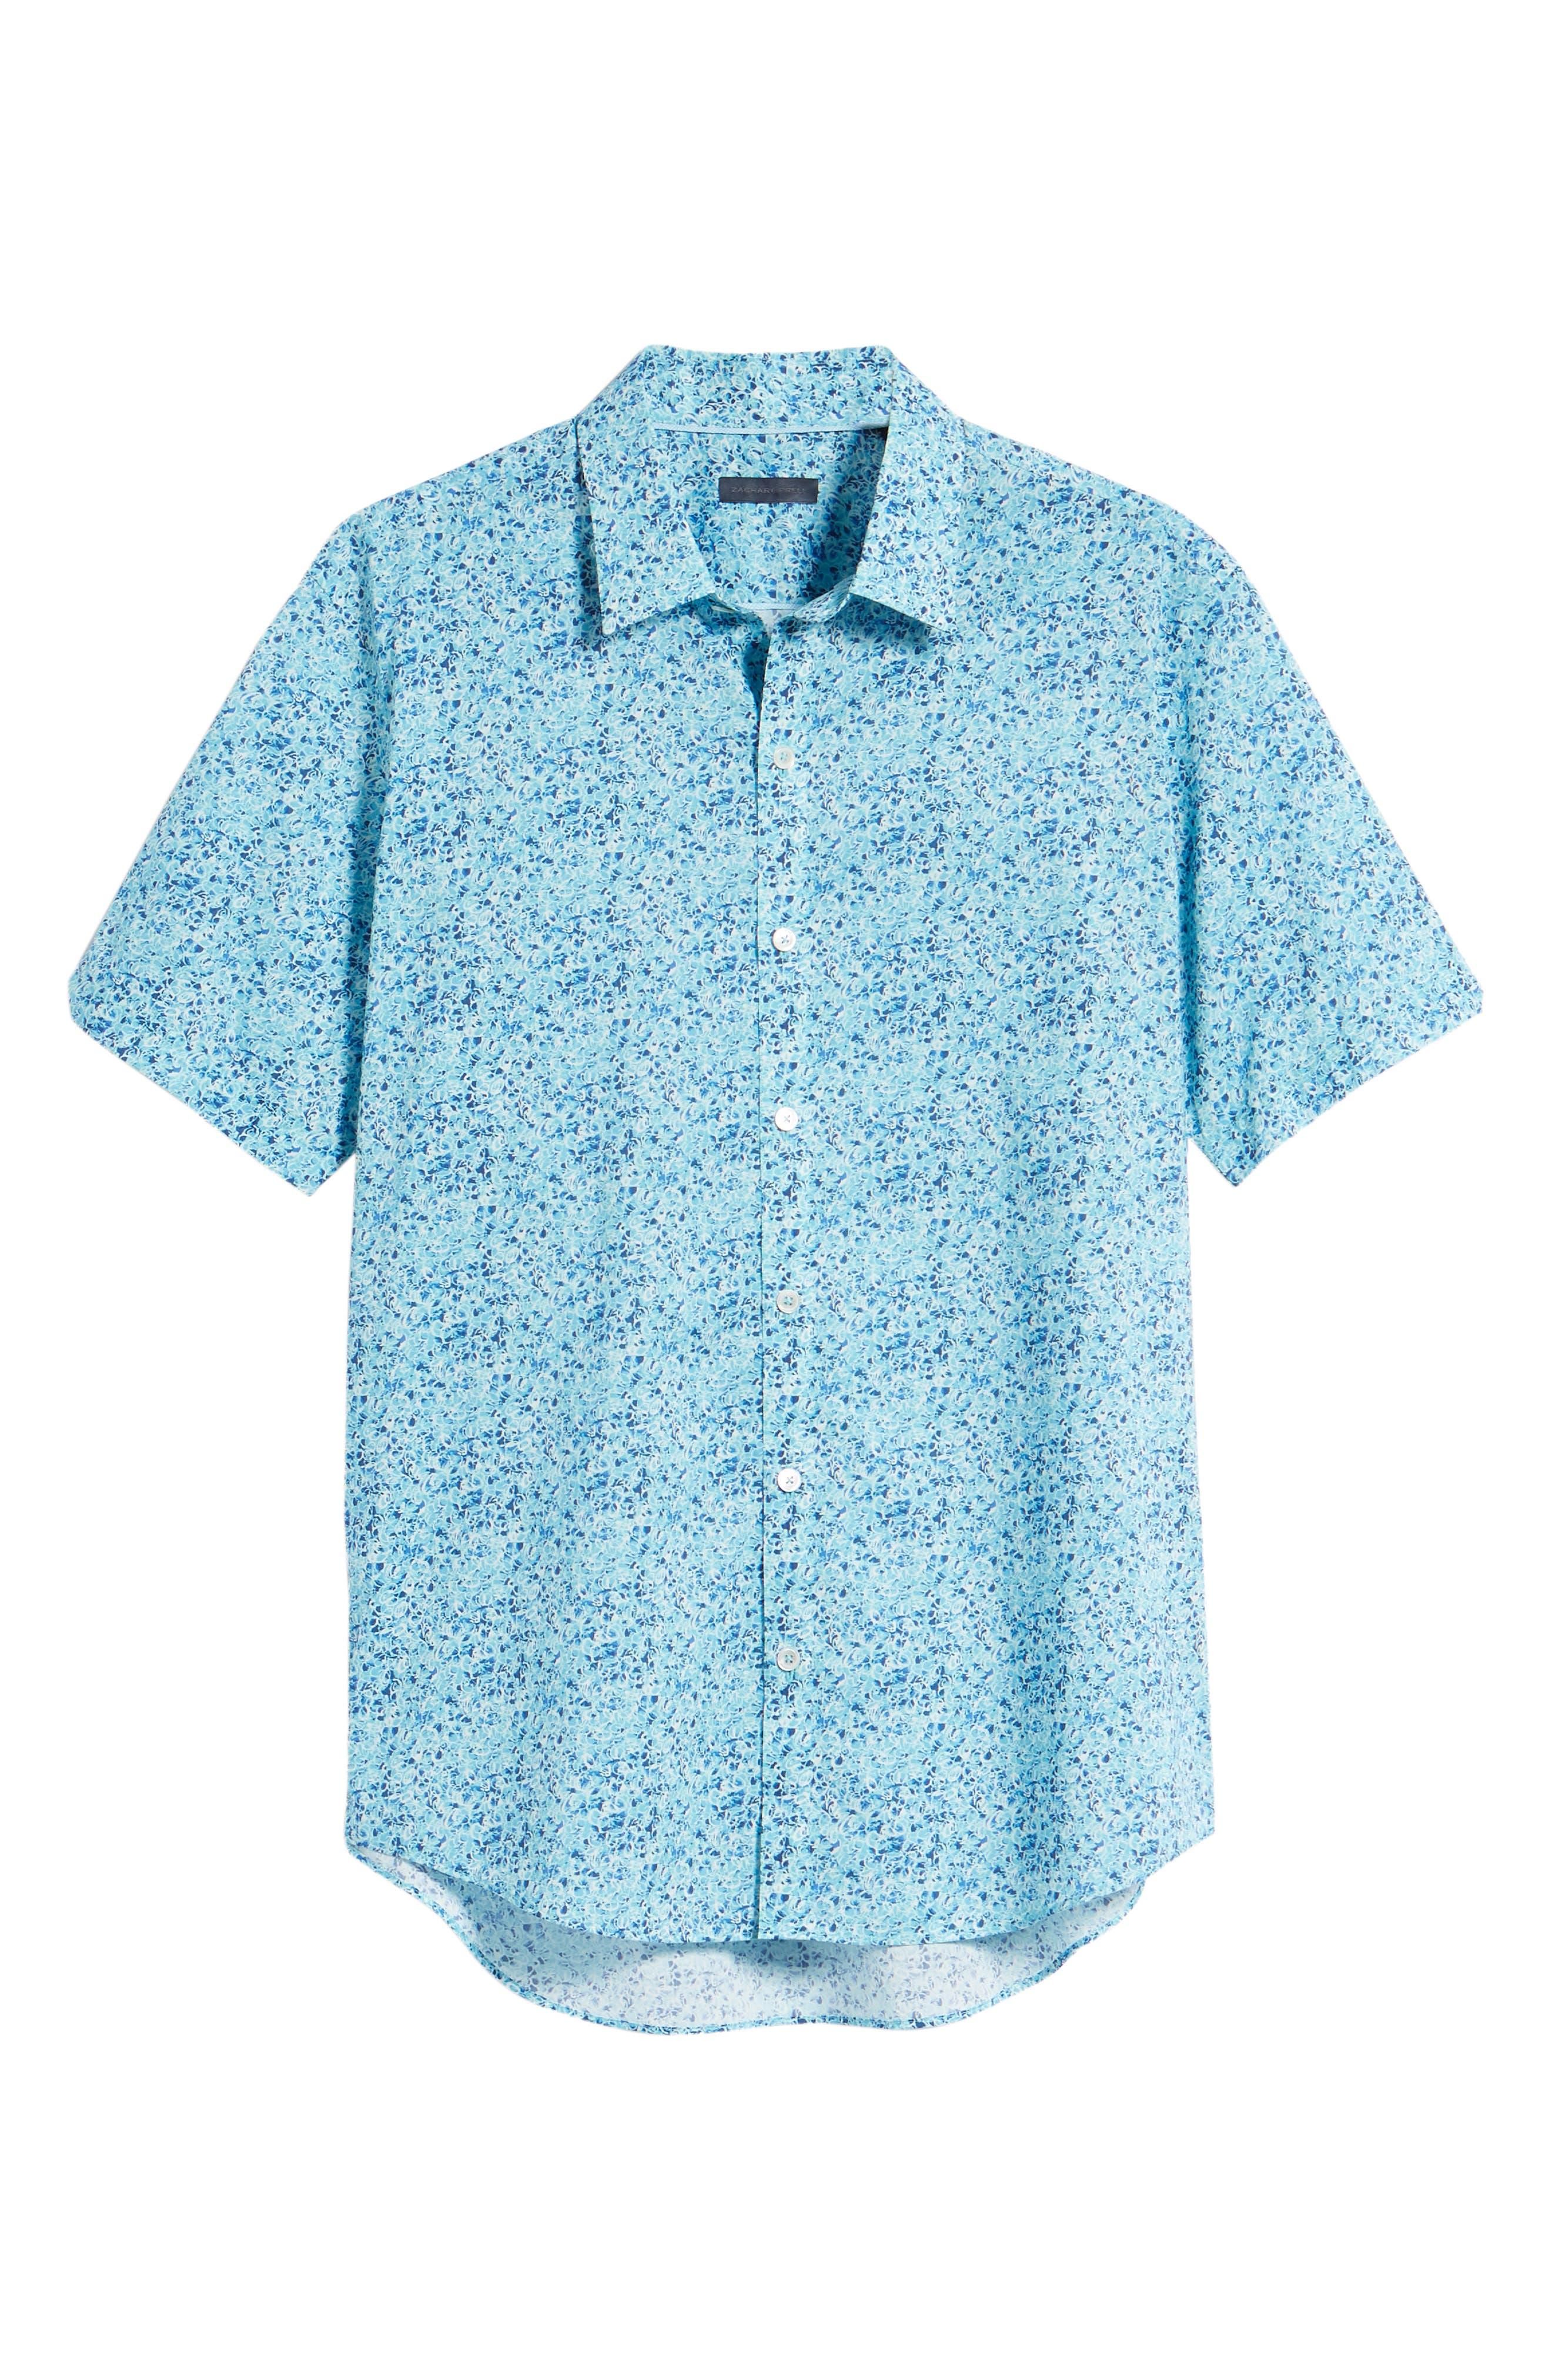 Kincaid Scribble Print Sport Shirt,                             Alternate thumbnail 6, color,                             AQUA